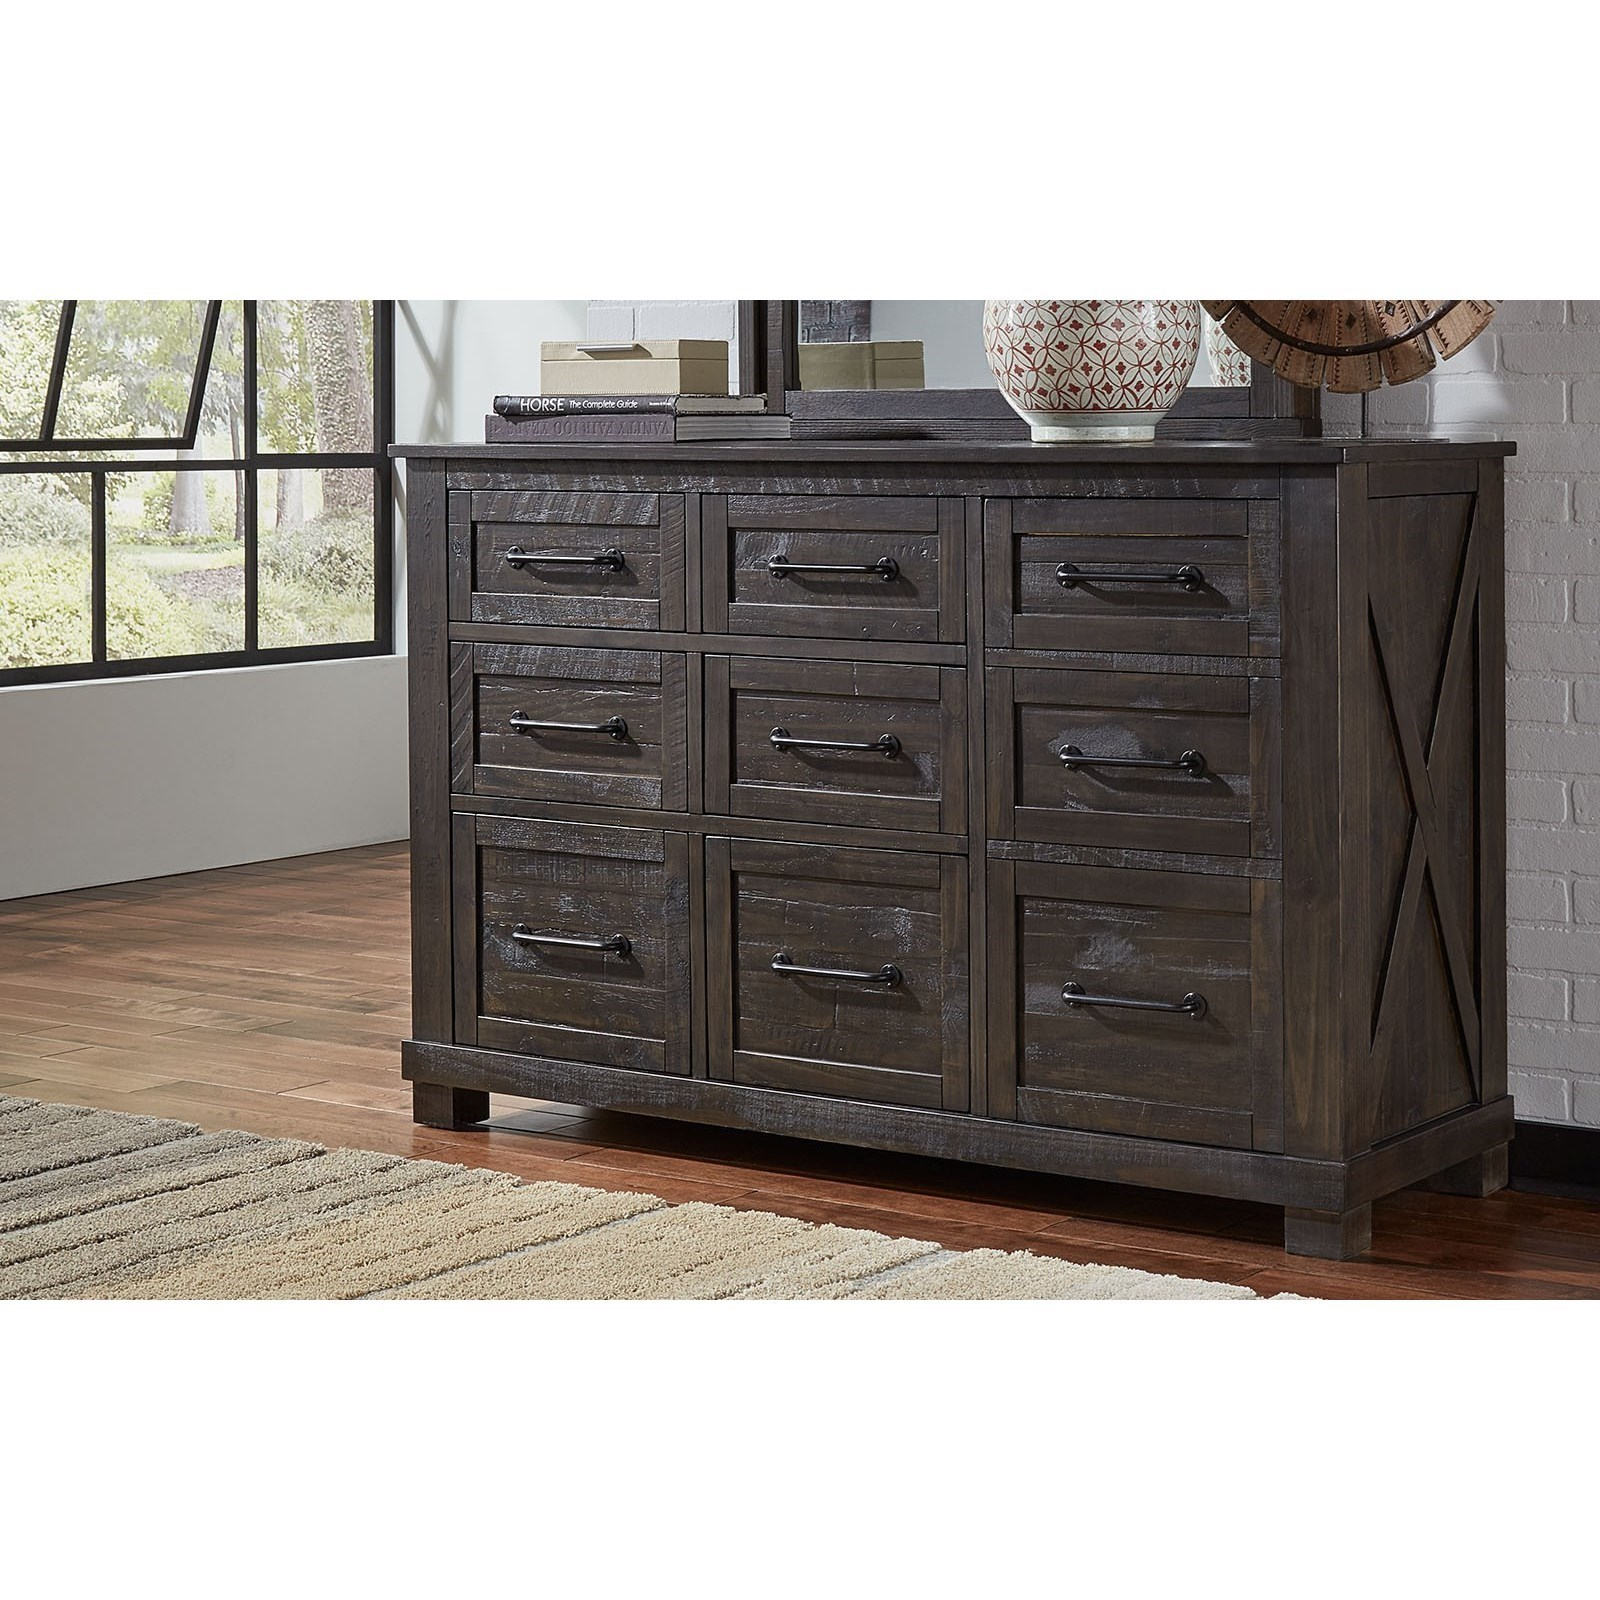 9 Drawer Dresser with Felt Lined Top Drawers